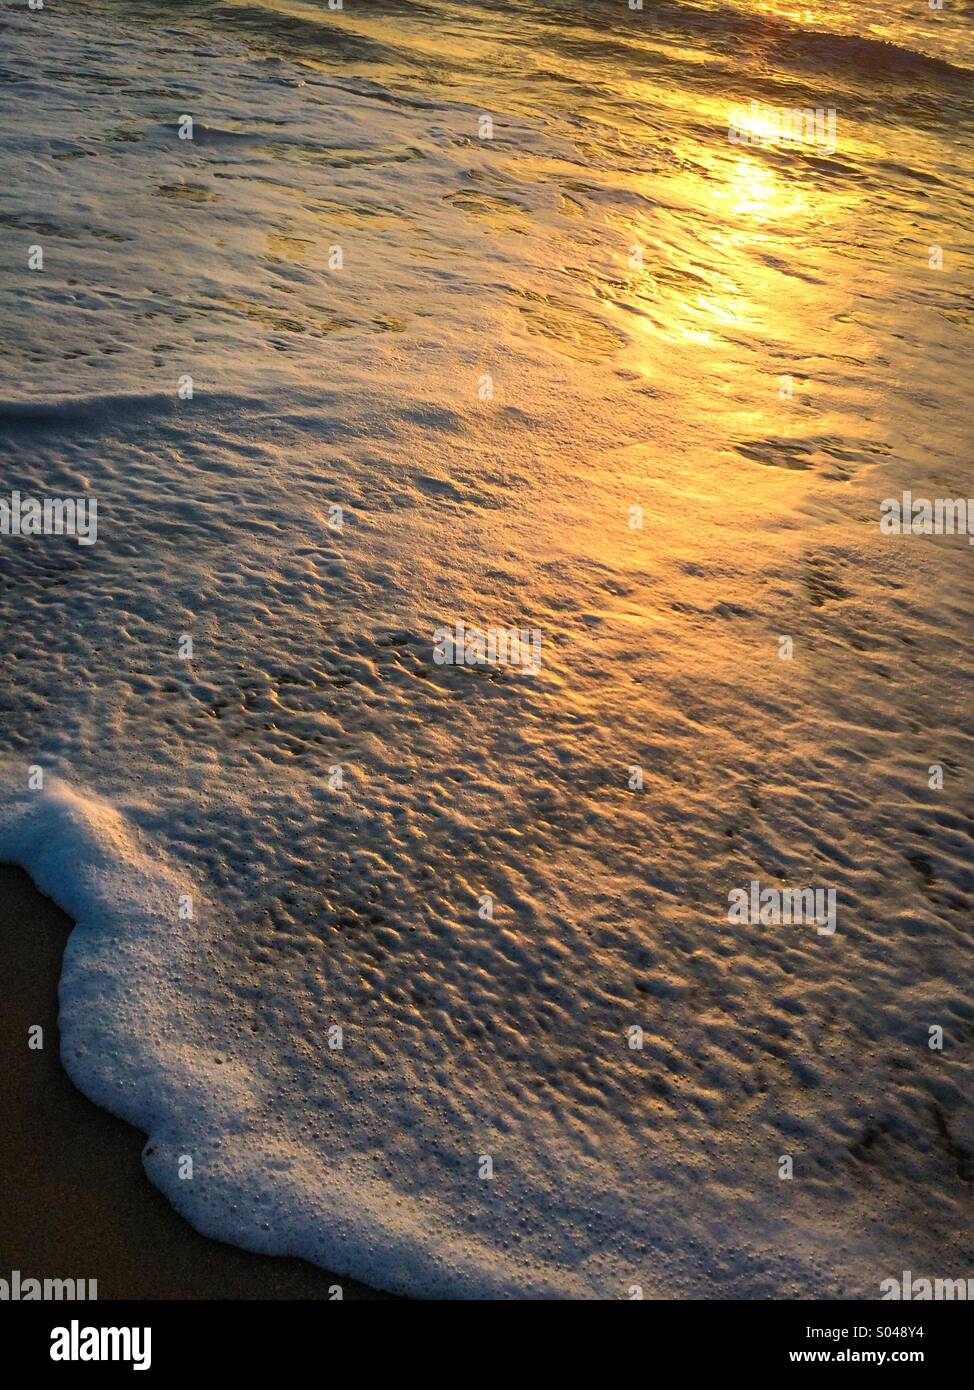 A foam laced wave lapping on the shore at sunrise. - Stock Image